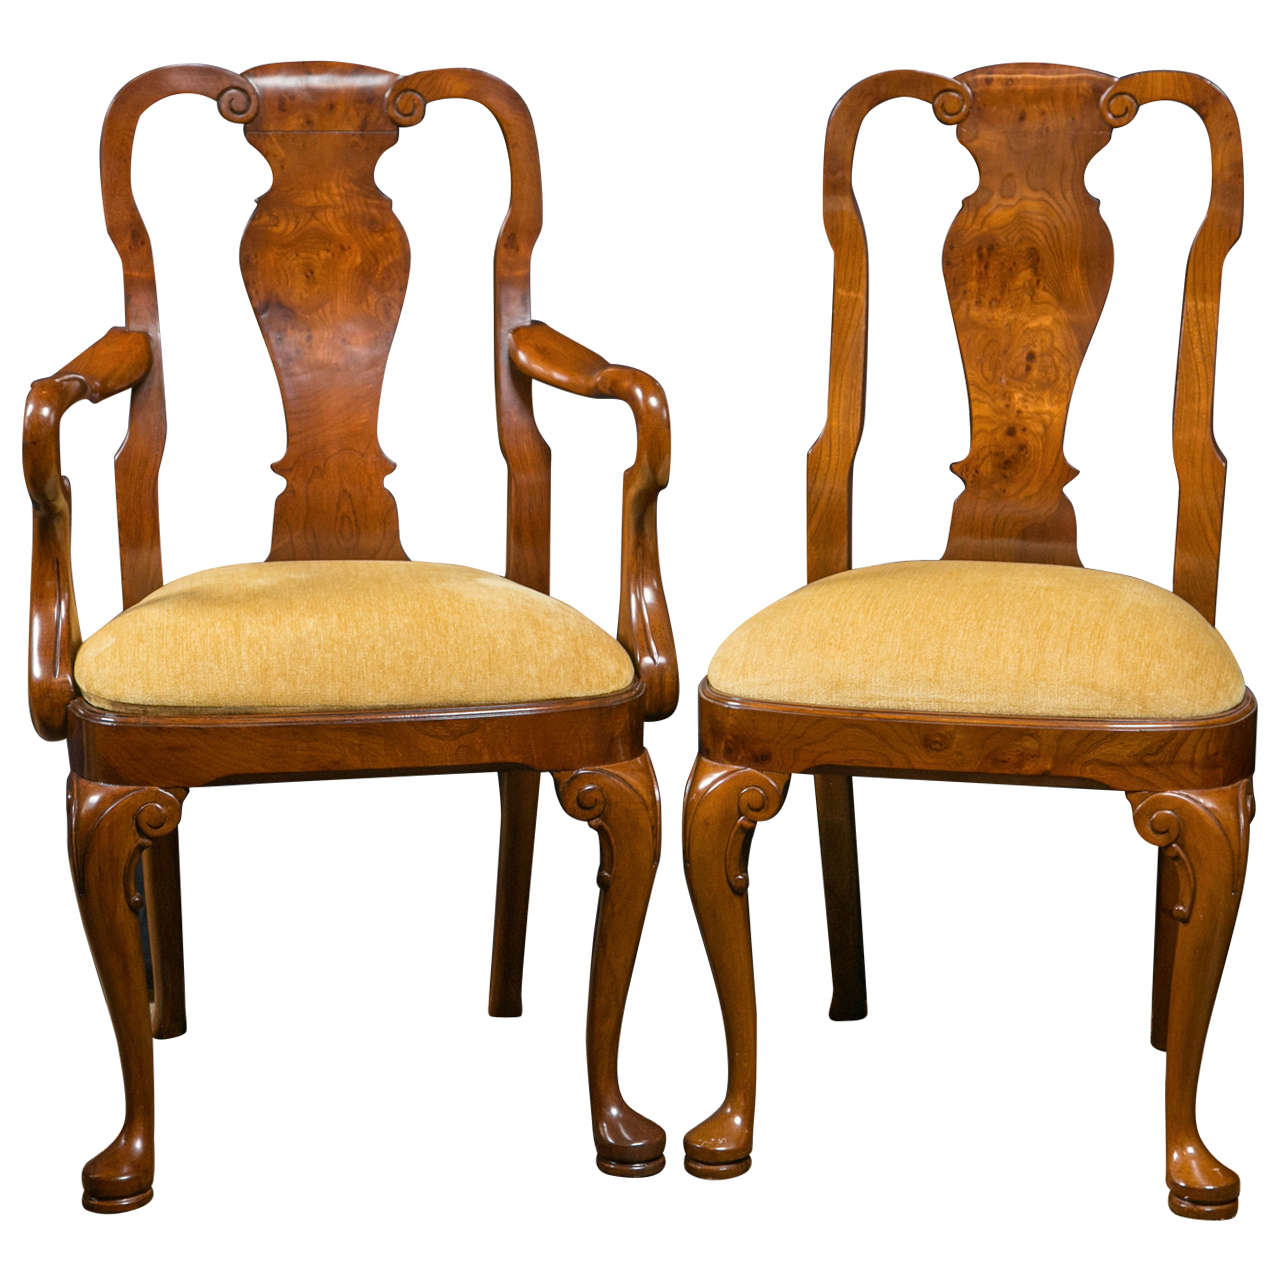 Walnut queen anne style dining chairs for sale at 1stdibs for Dining room chairs queen anne